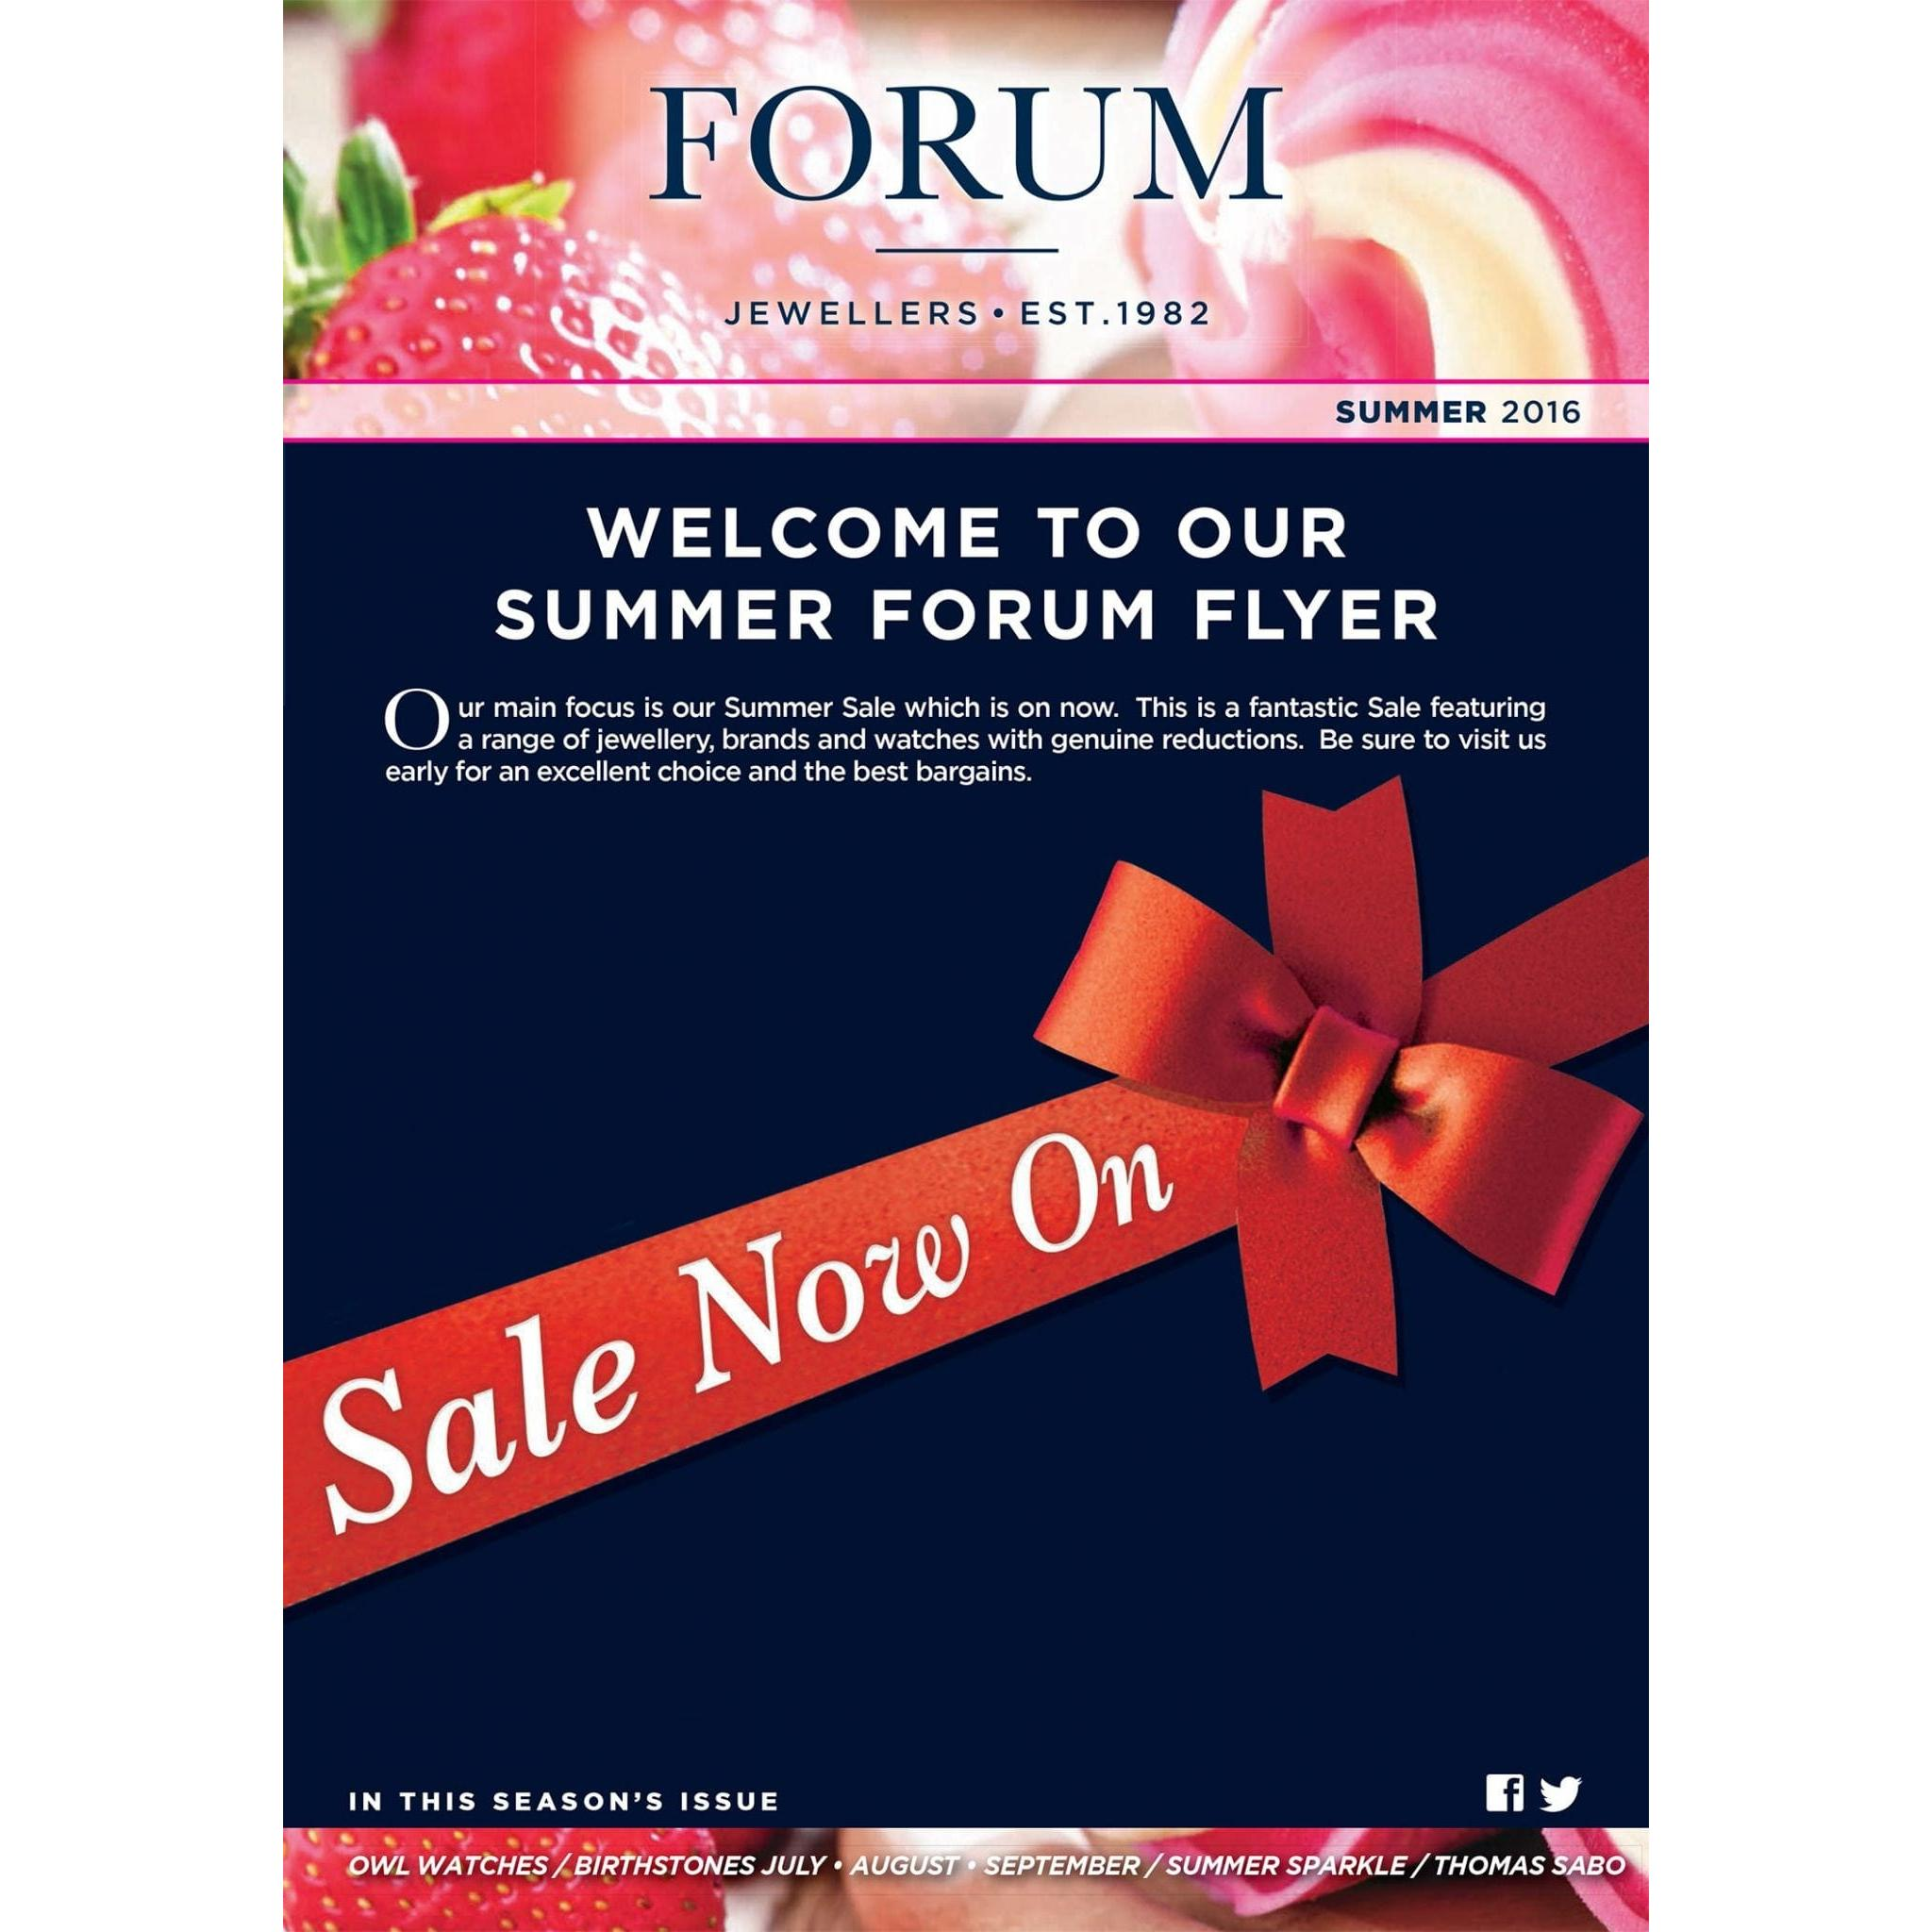 Forum jewellers Poole newsletter